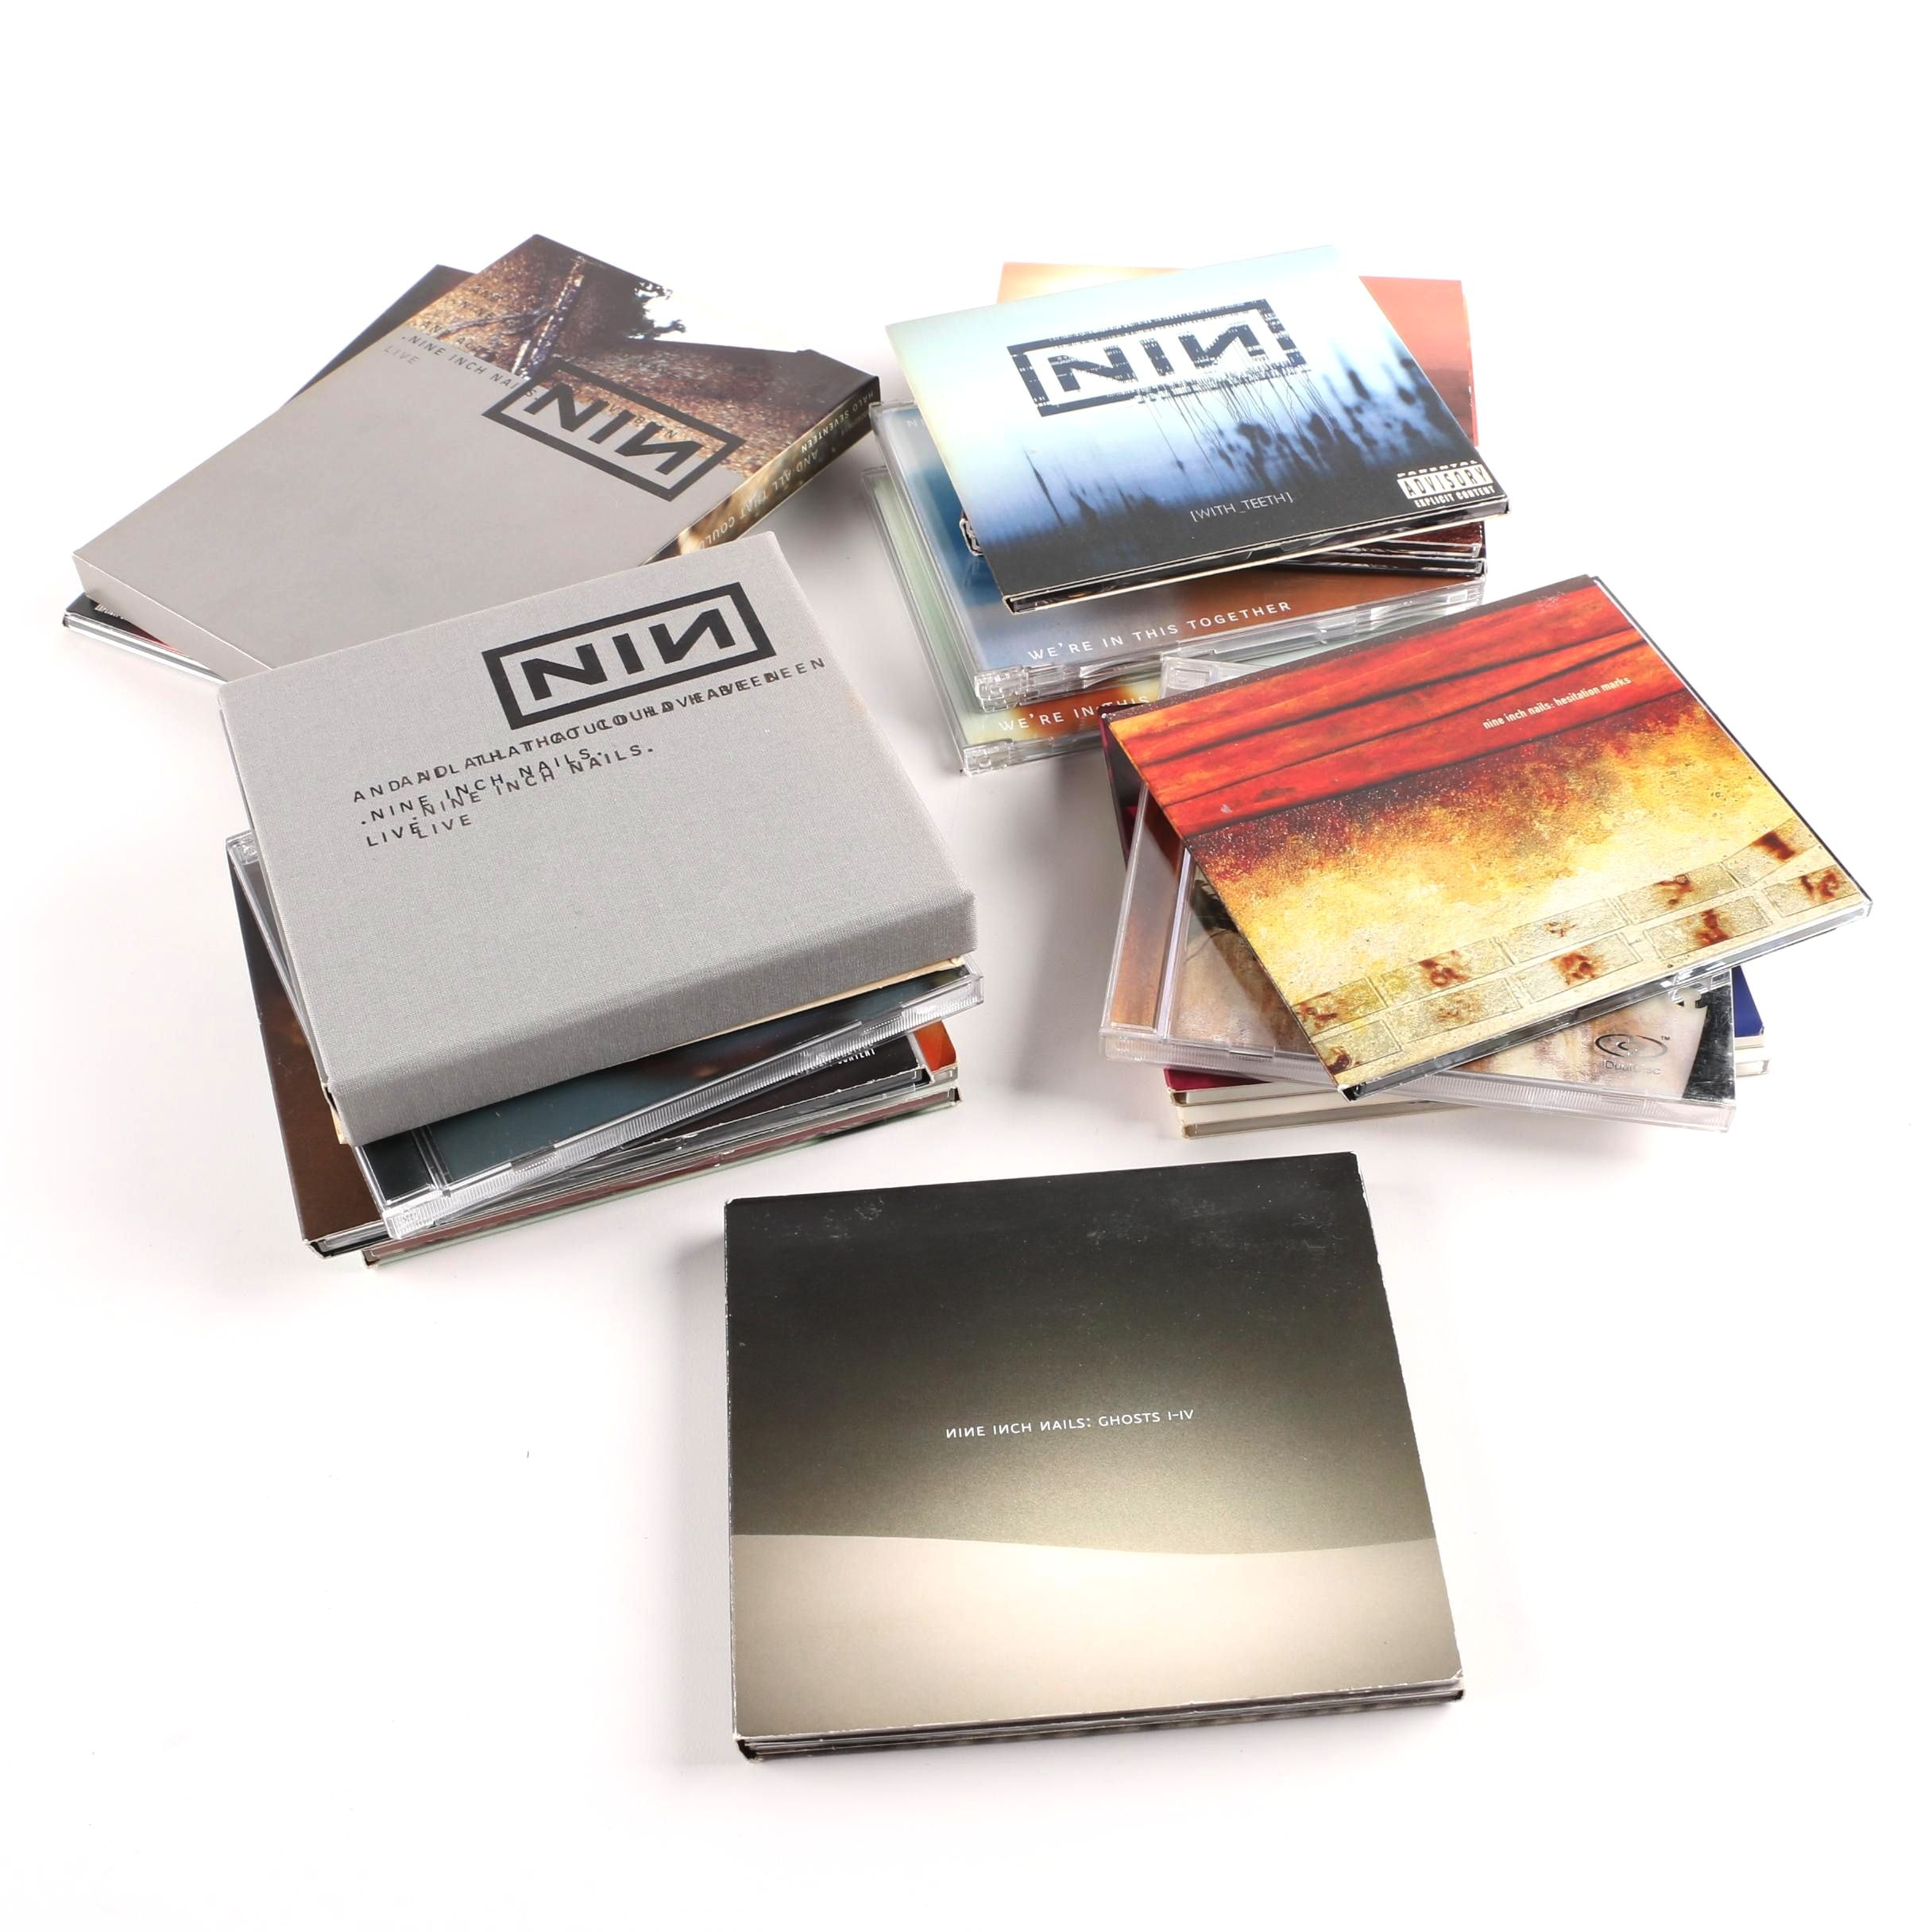 "Nine Inch Nails CDs and DVD Collection Including ""The Downward Spiral"" Dual Disc"